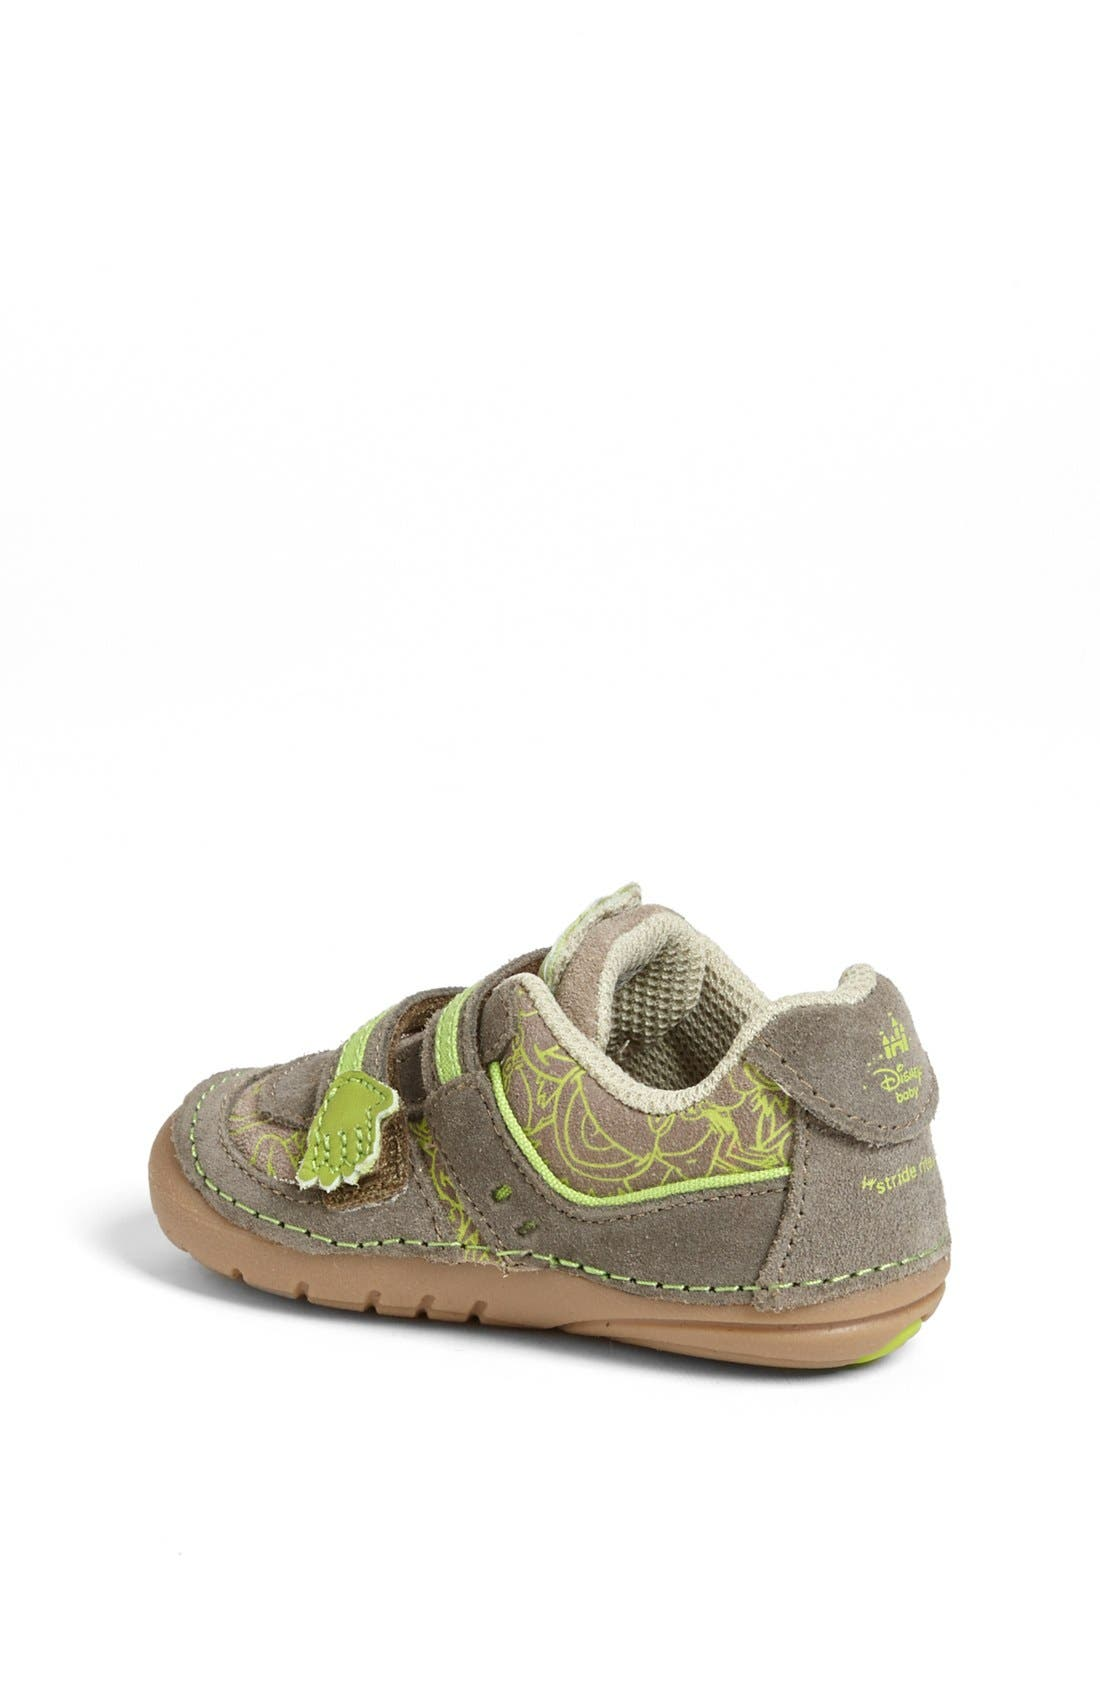 Alternate Image 2  - Stride Rite 'Kermit' Sneaker (Baby & Walker)